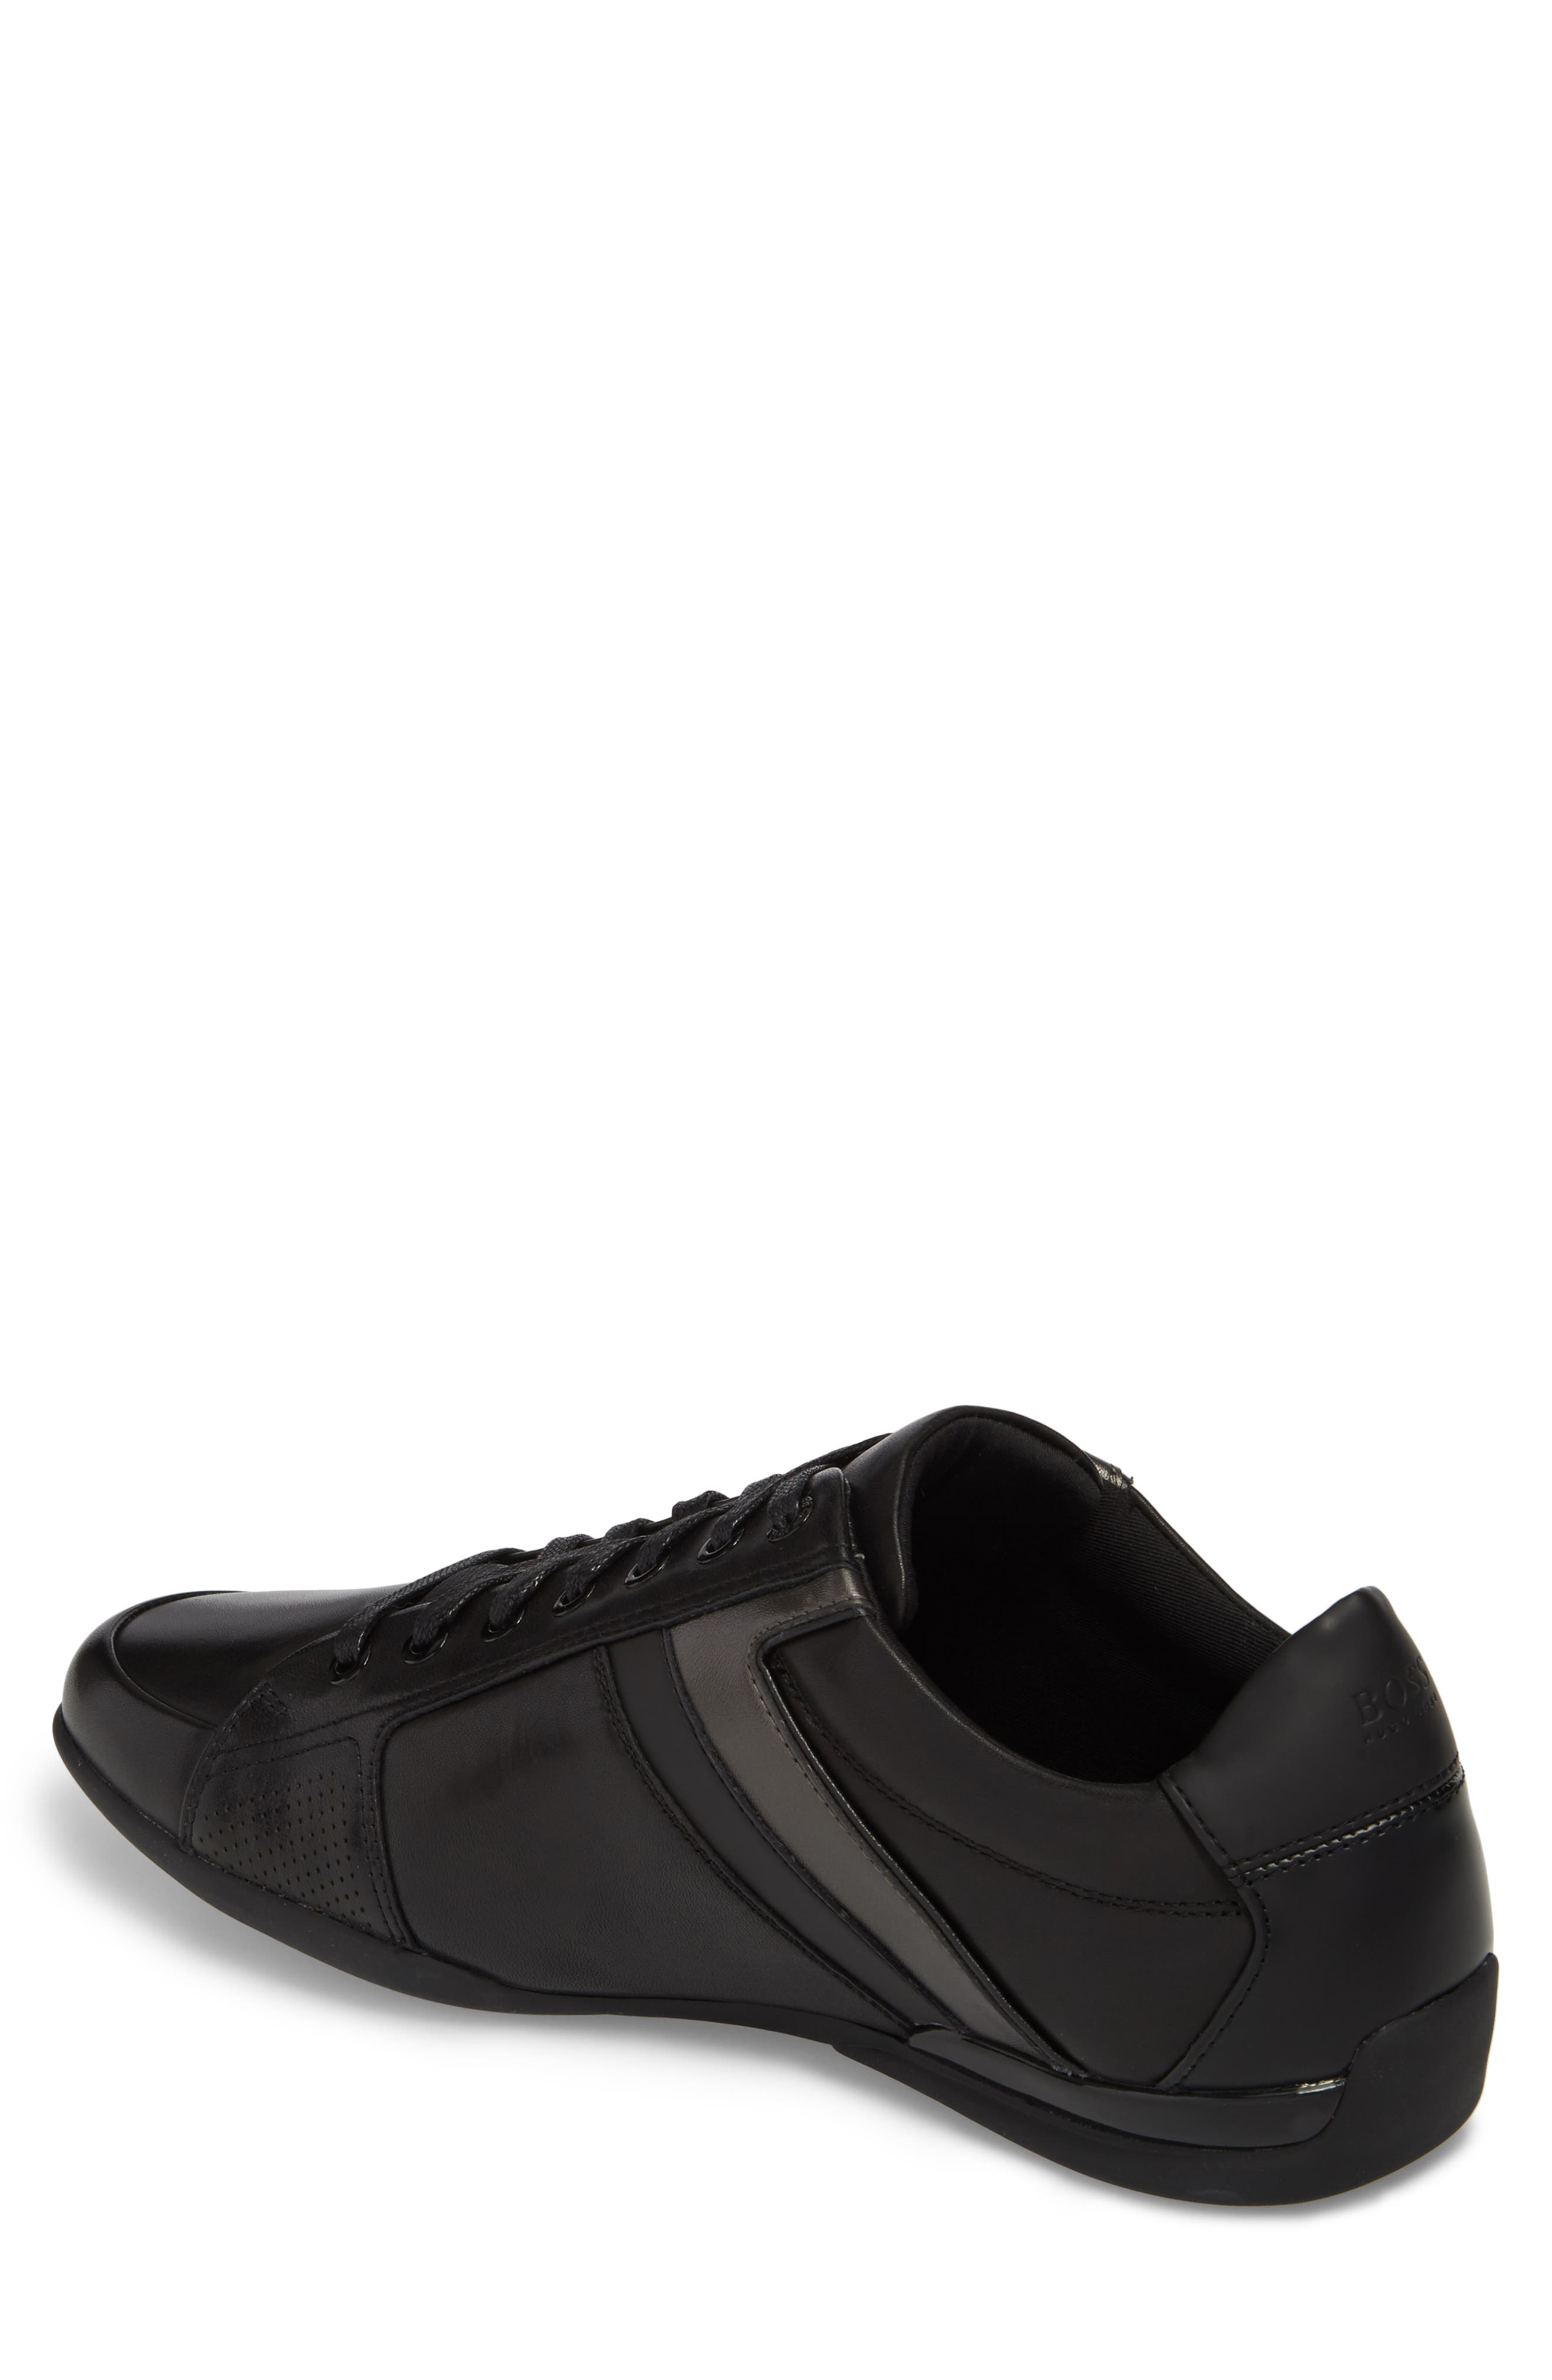 Space Lowp Lux Sneaker,                             Alternate thumbnail 2, color,                             BLACK LEATHER